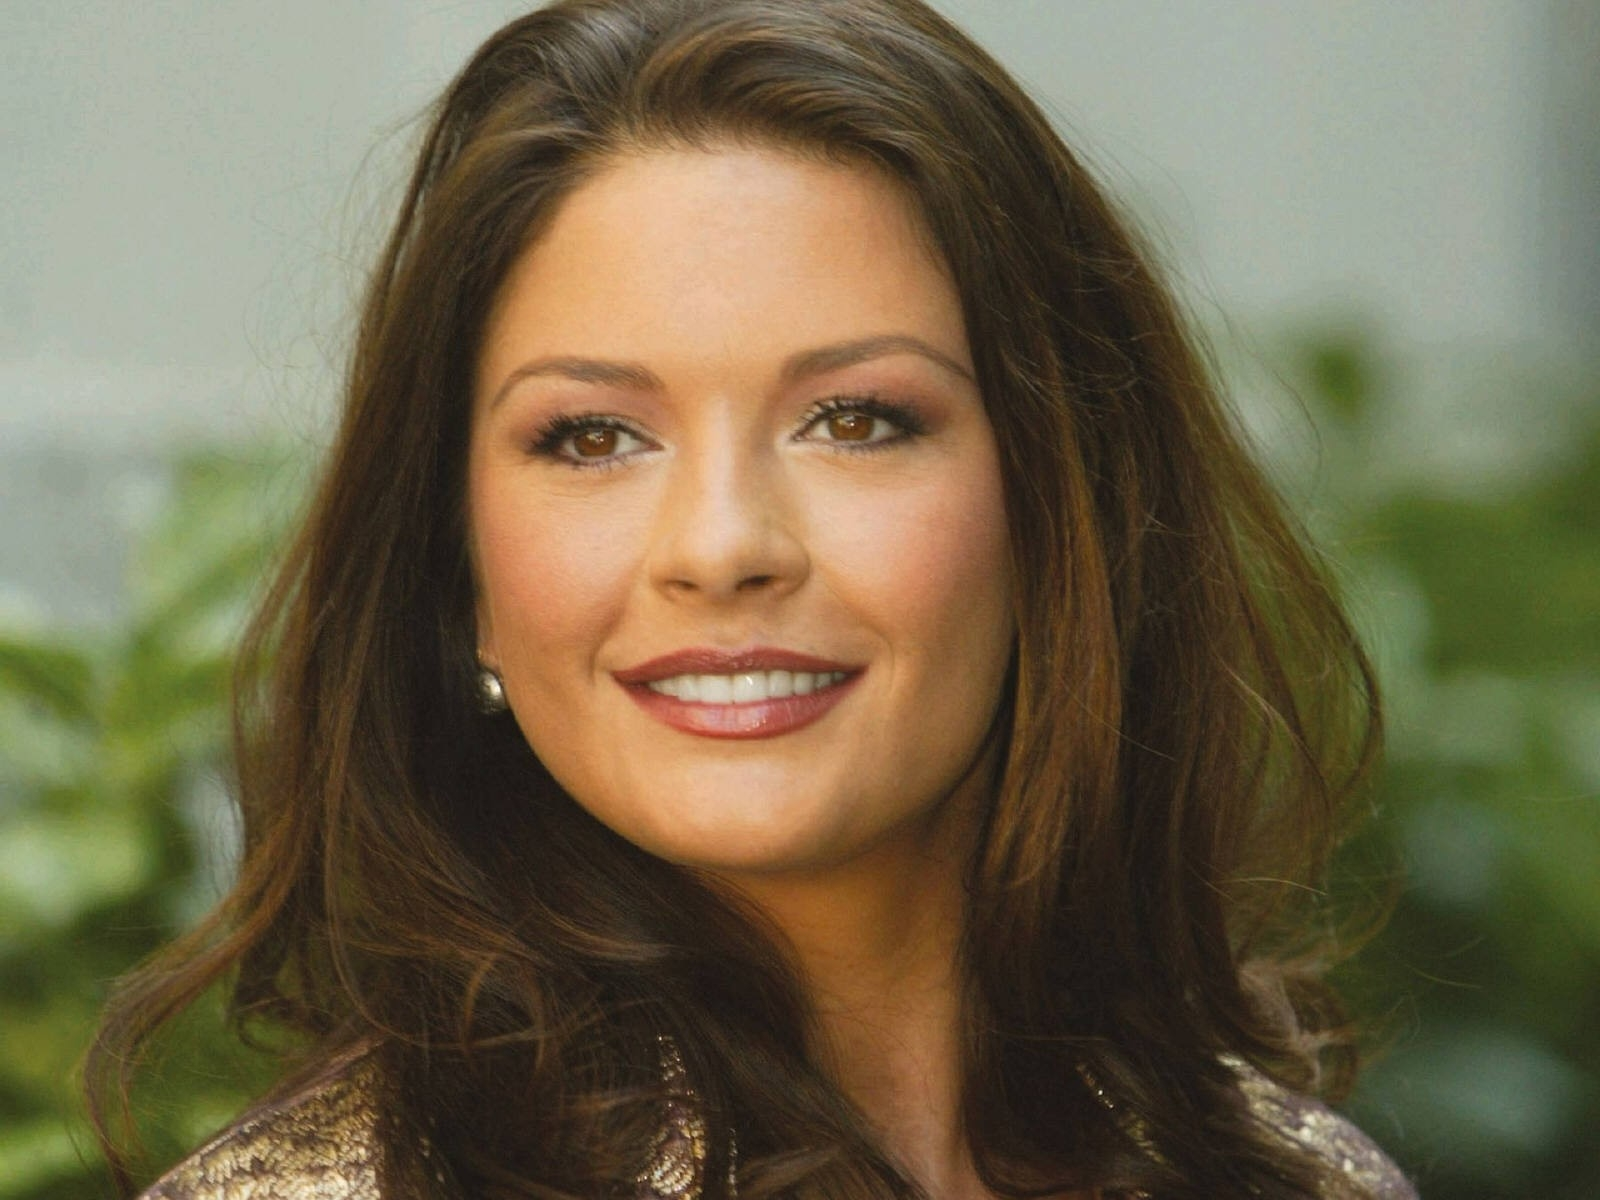 Wallpaper di Catherine Zeta-Jones, 24